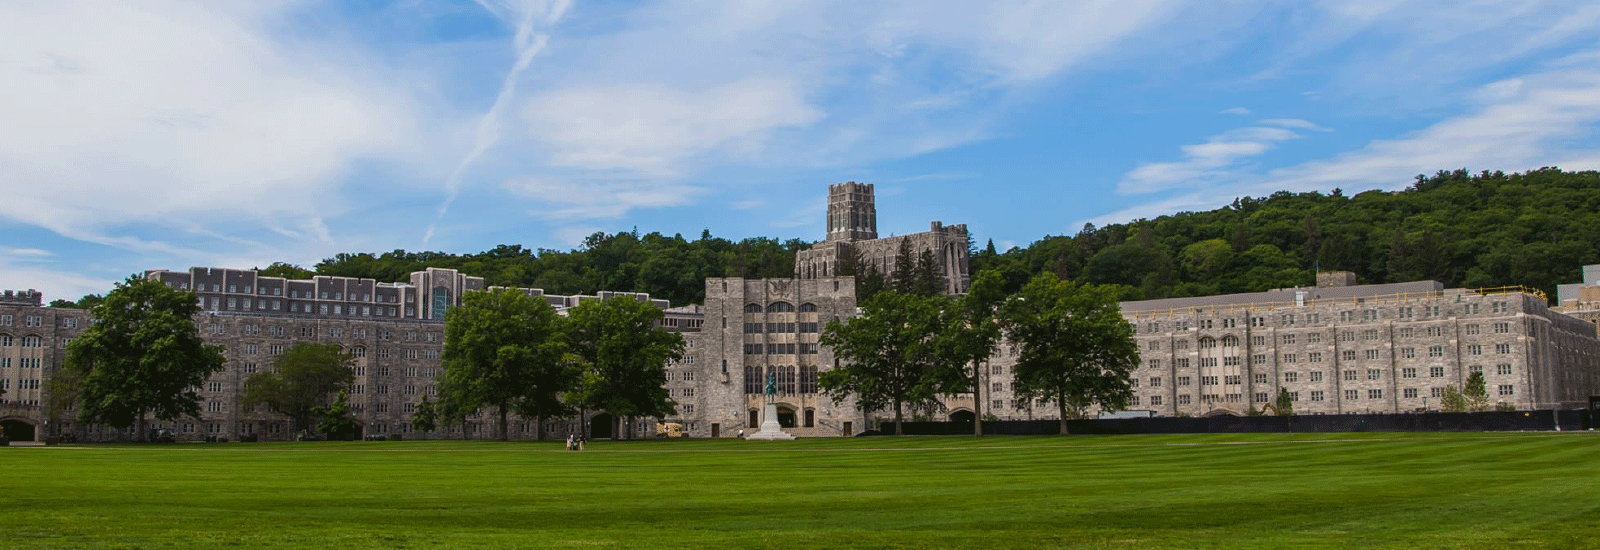 Where Is West Point Campus?